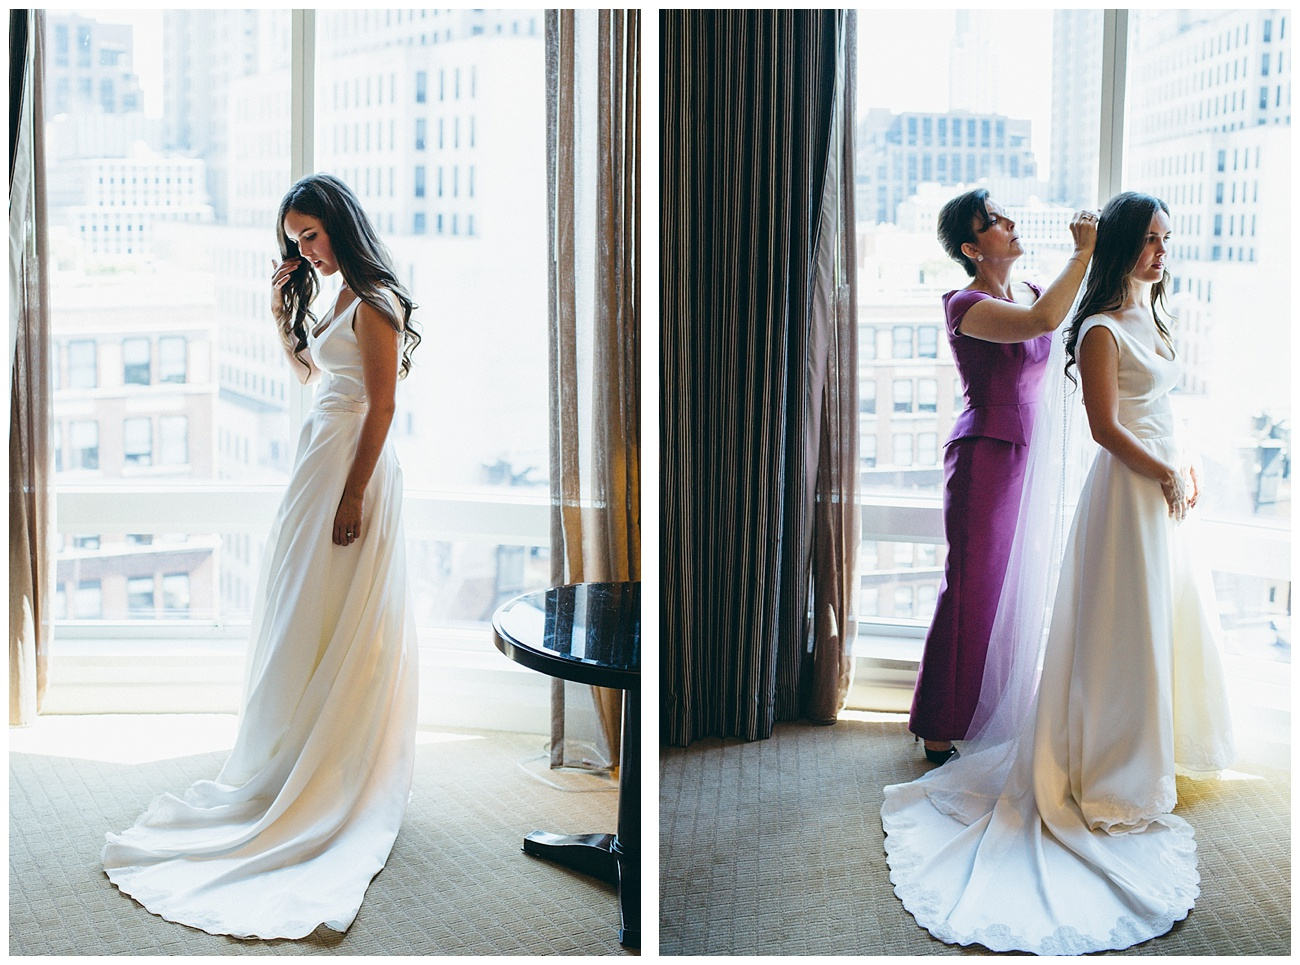 Christine Ted NYC Elopement Wedding_0018